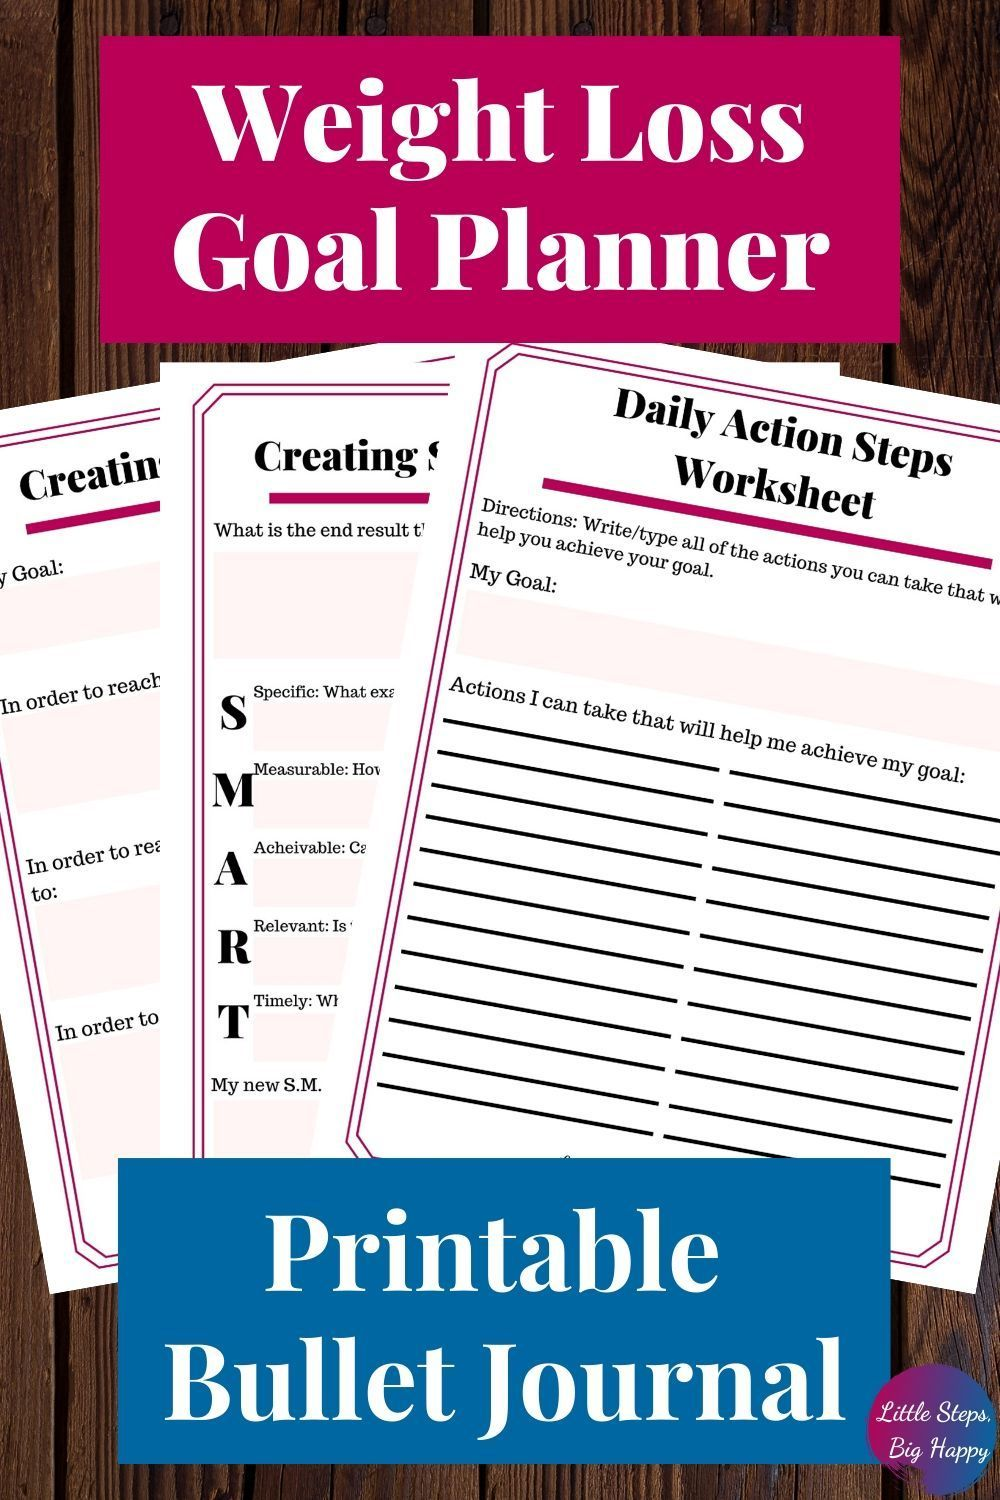 You don't want to miss this goal planner printable. This 10 page workbook will help you plan out your yearly, monthly, and weekly goals. Designed in a bullet journal style to be simple and easy to use. Get your life and your weight loss on track in 2020!